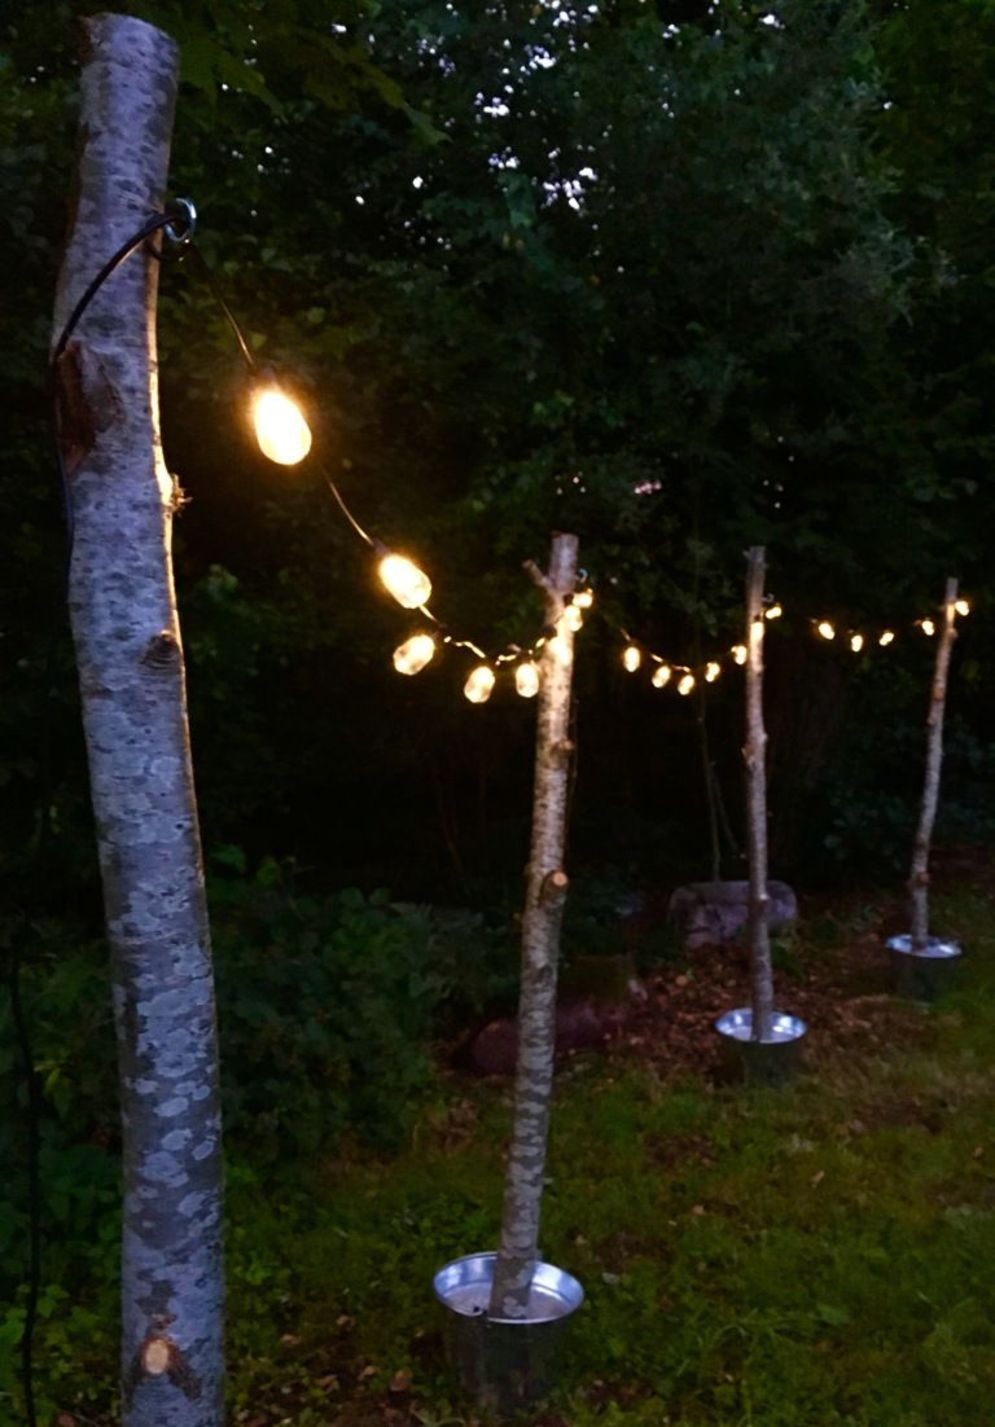 Amazing festoon lighting to enhance beautiful garden lighting ideas with fairy outdoor display Image 7